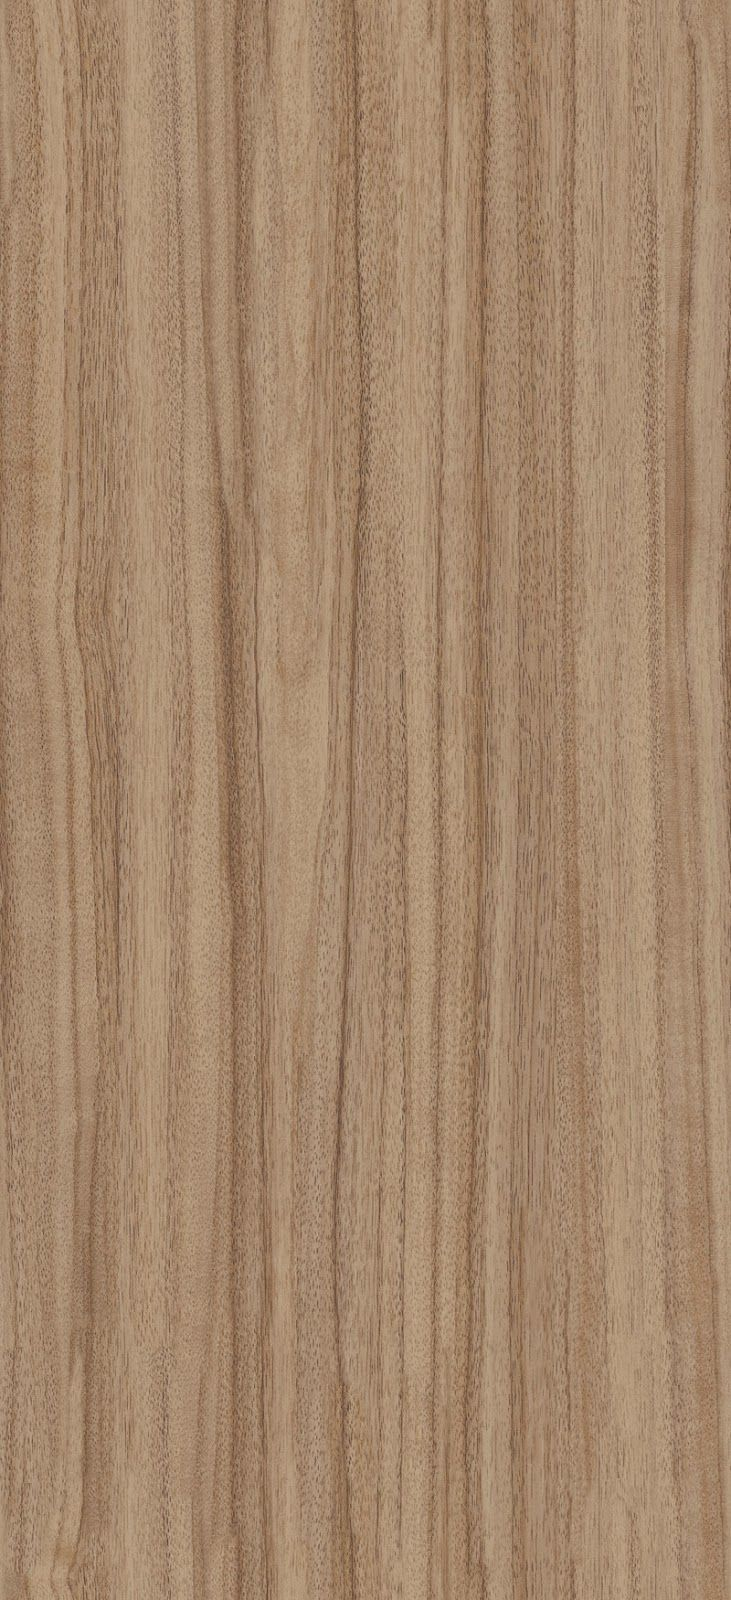 25 Best Ideas About Wood Texture On Pinterest Background